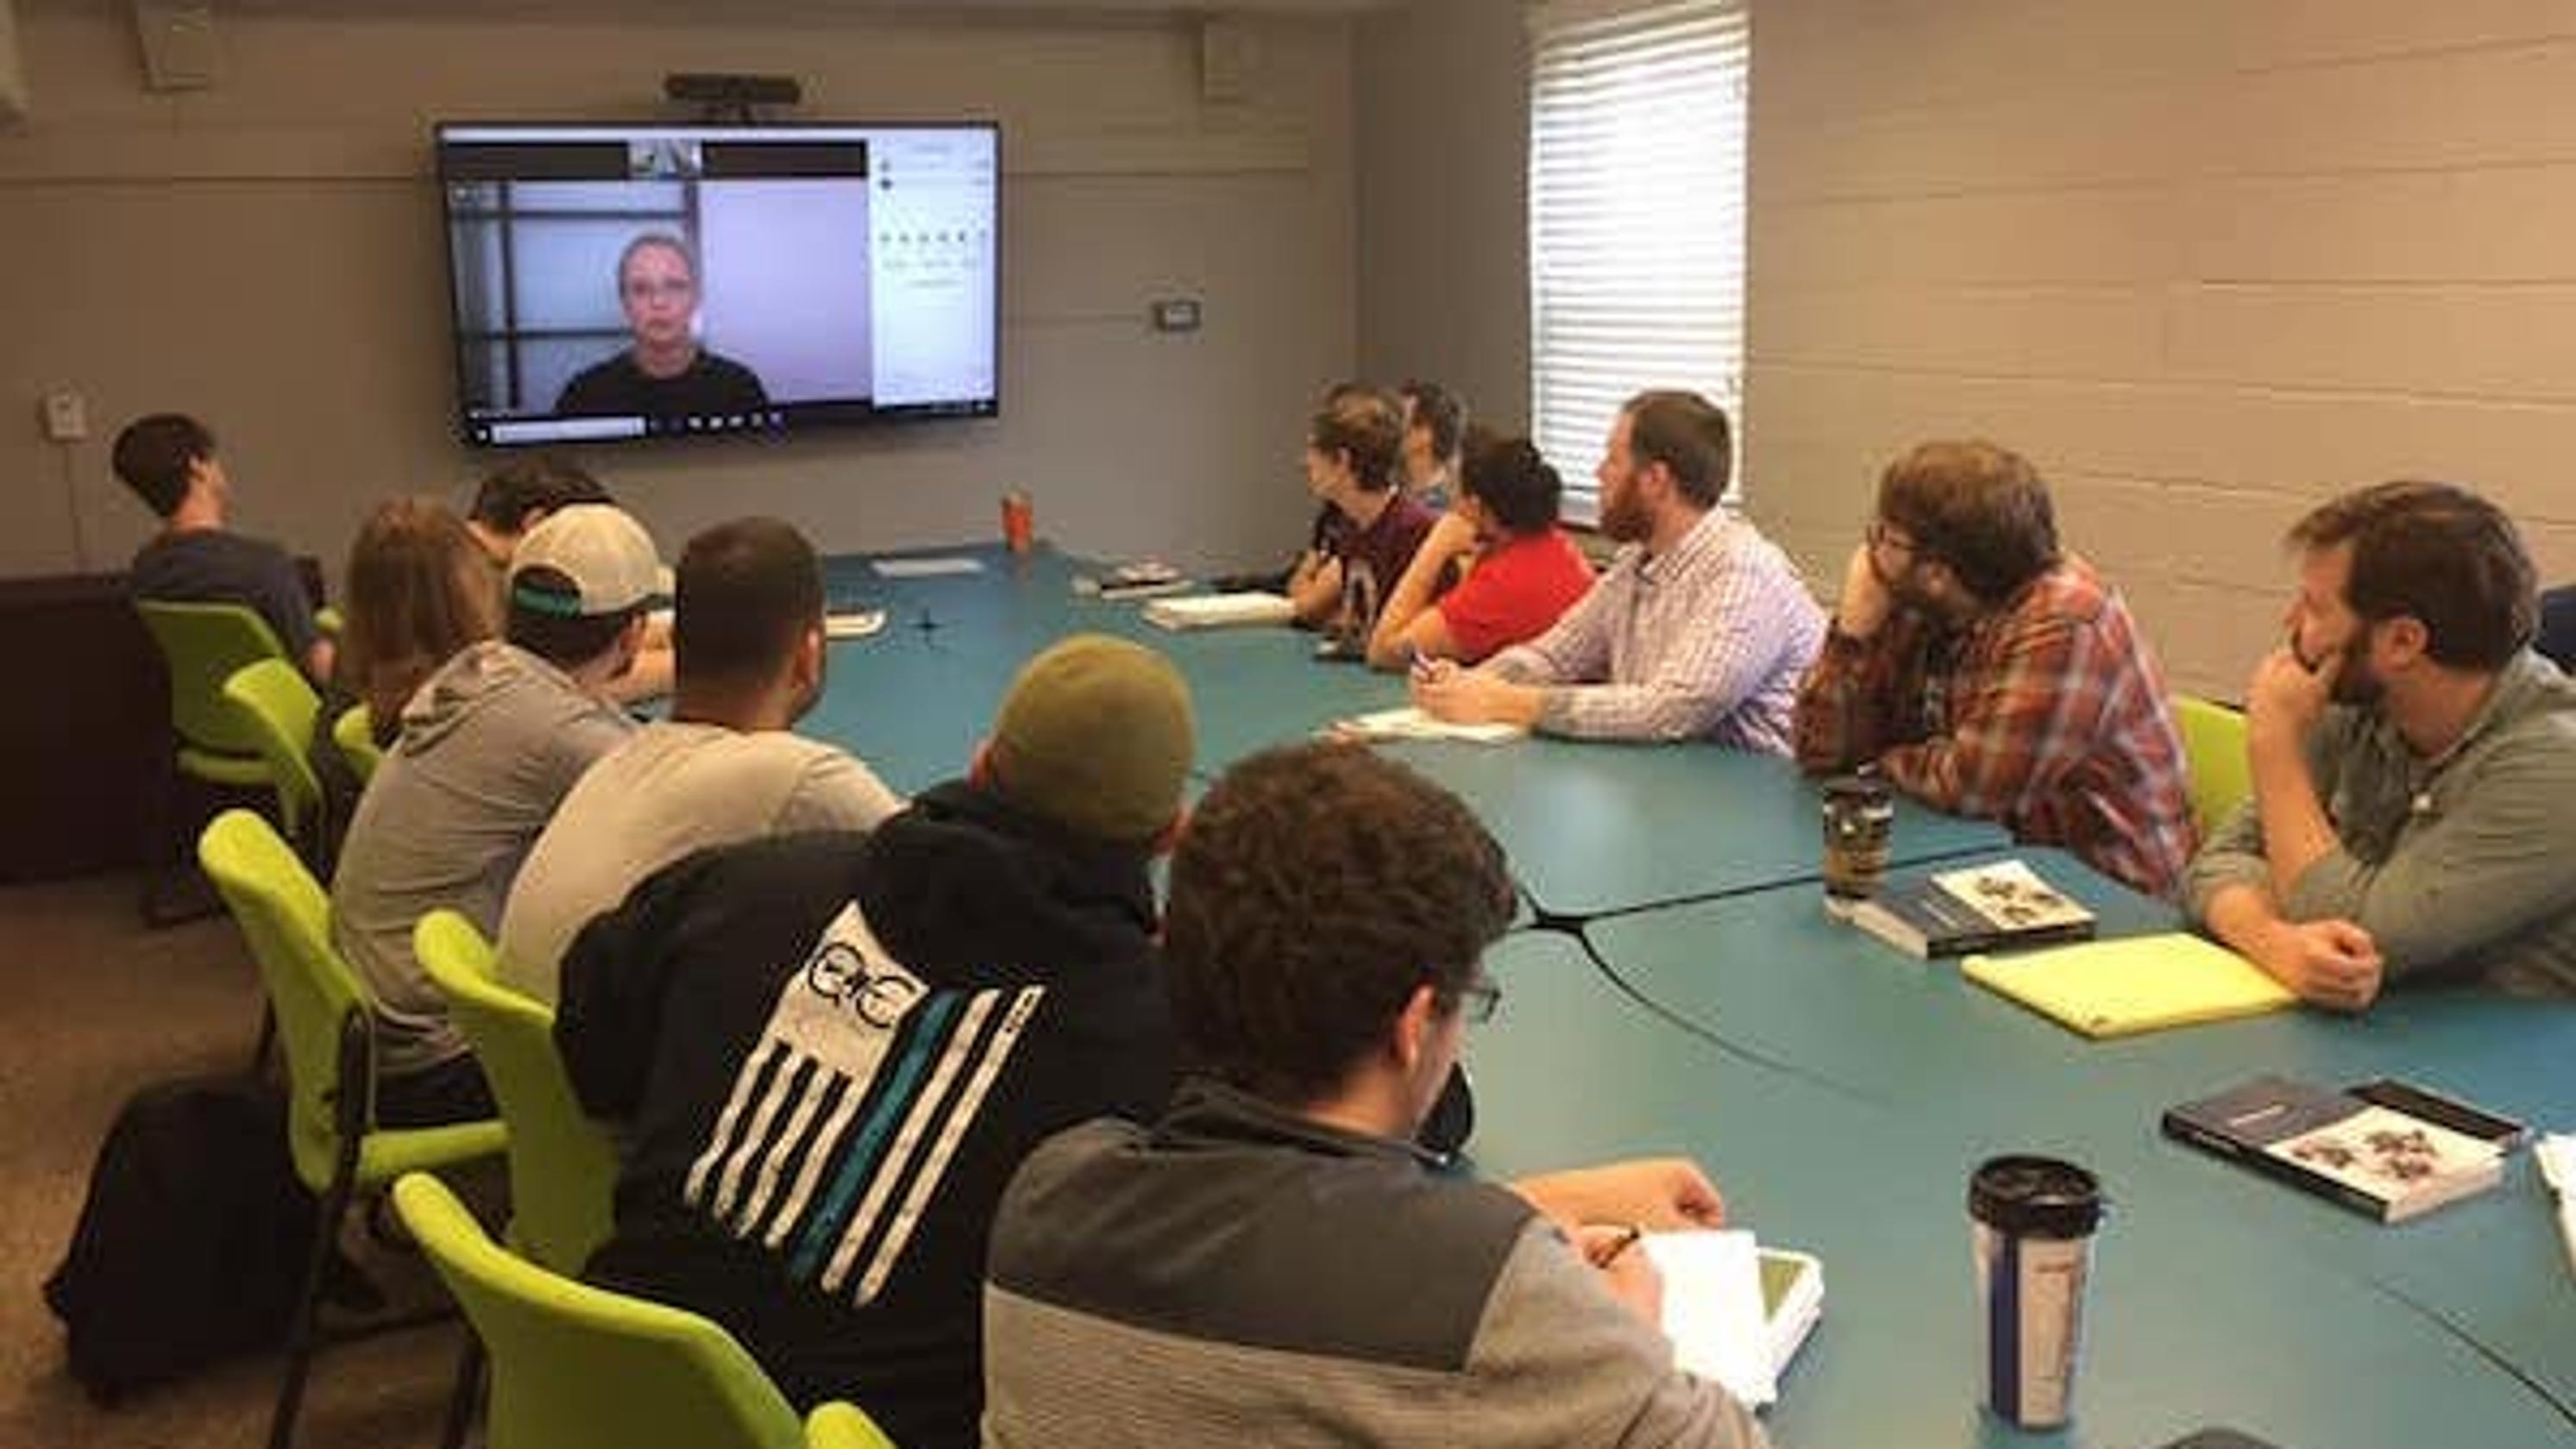 APSU history students use video-conferencing technology to connect with prominent authors across the U.S.